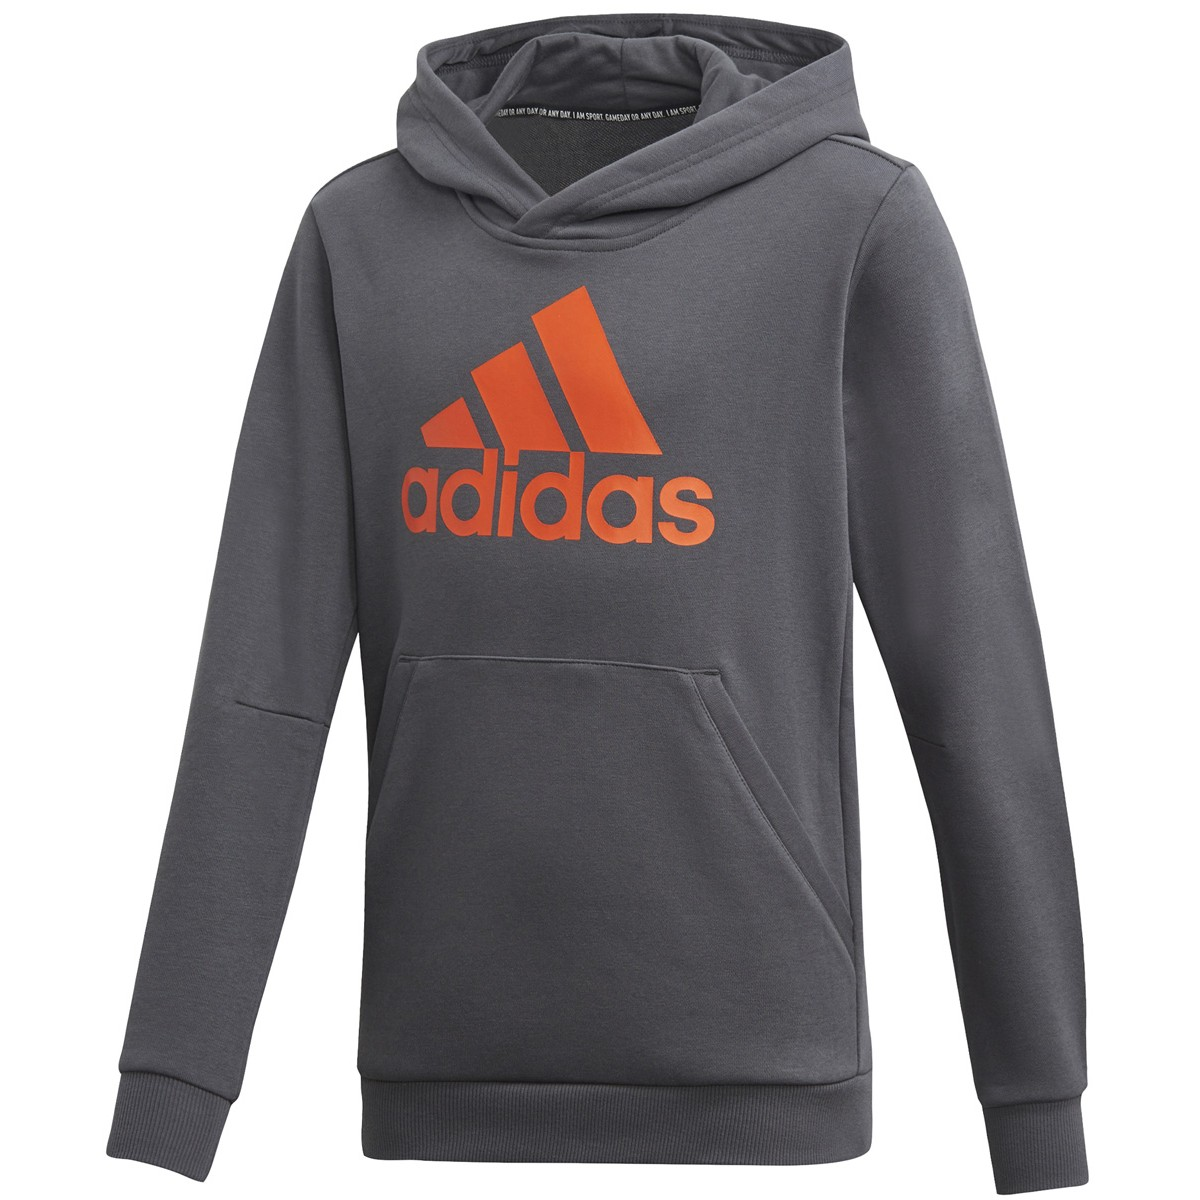 JUNIOR ADIDAS TRAINING BOS SWEATER